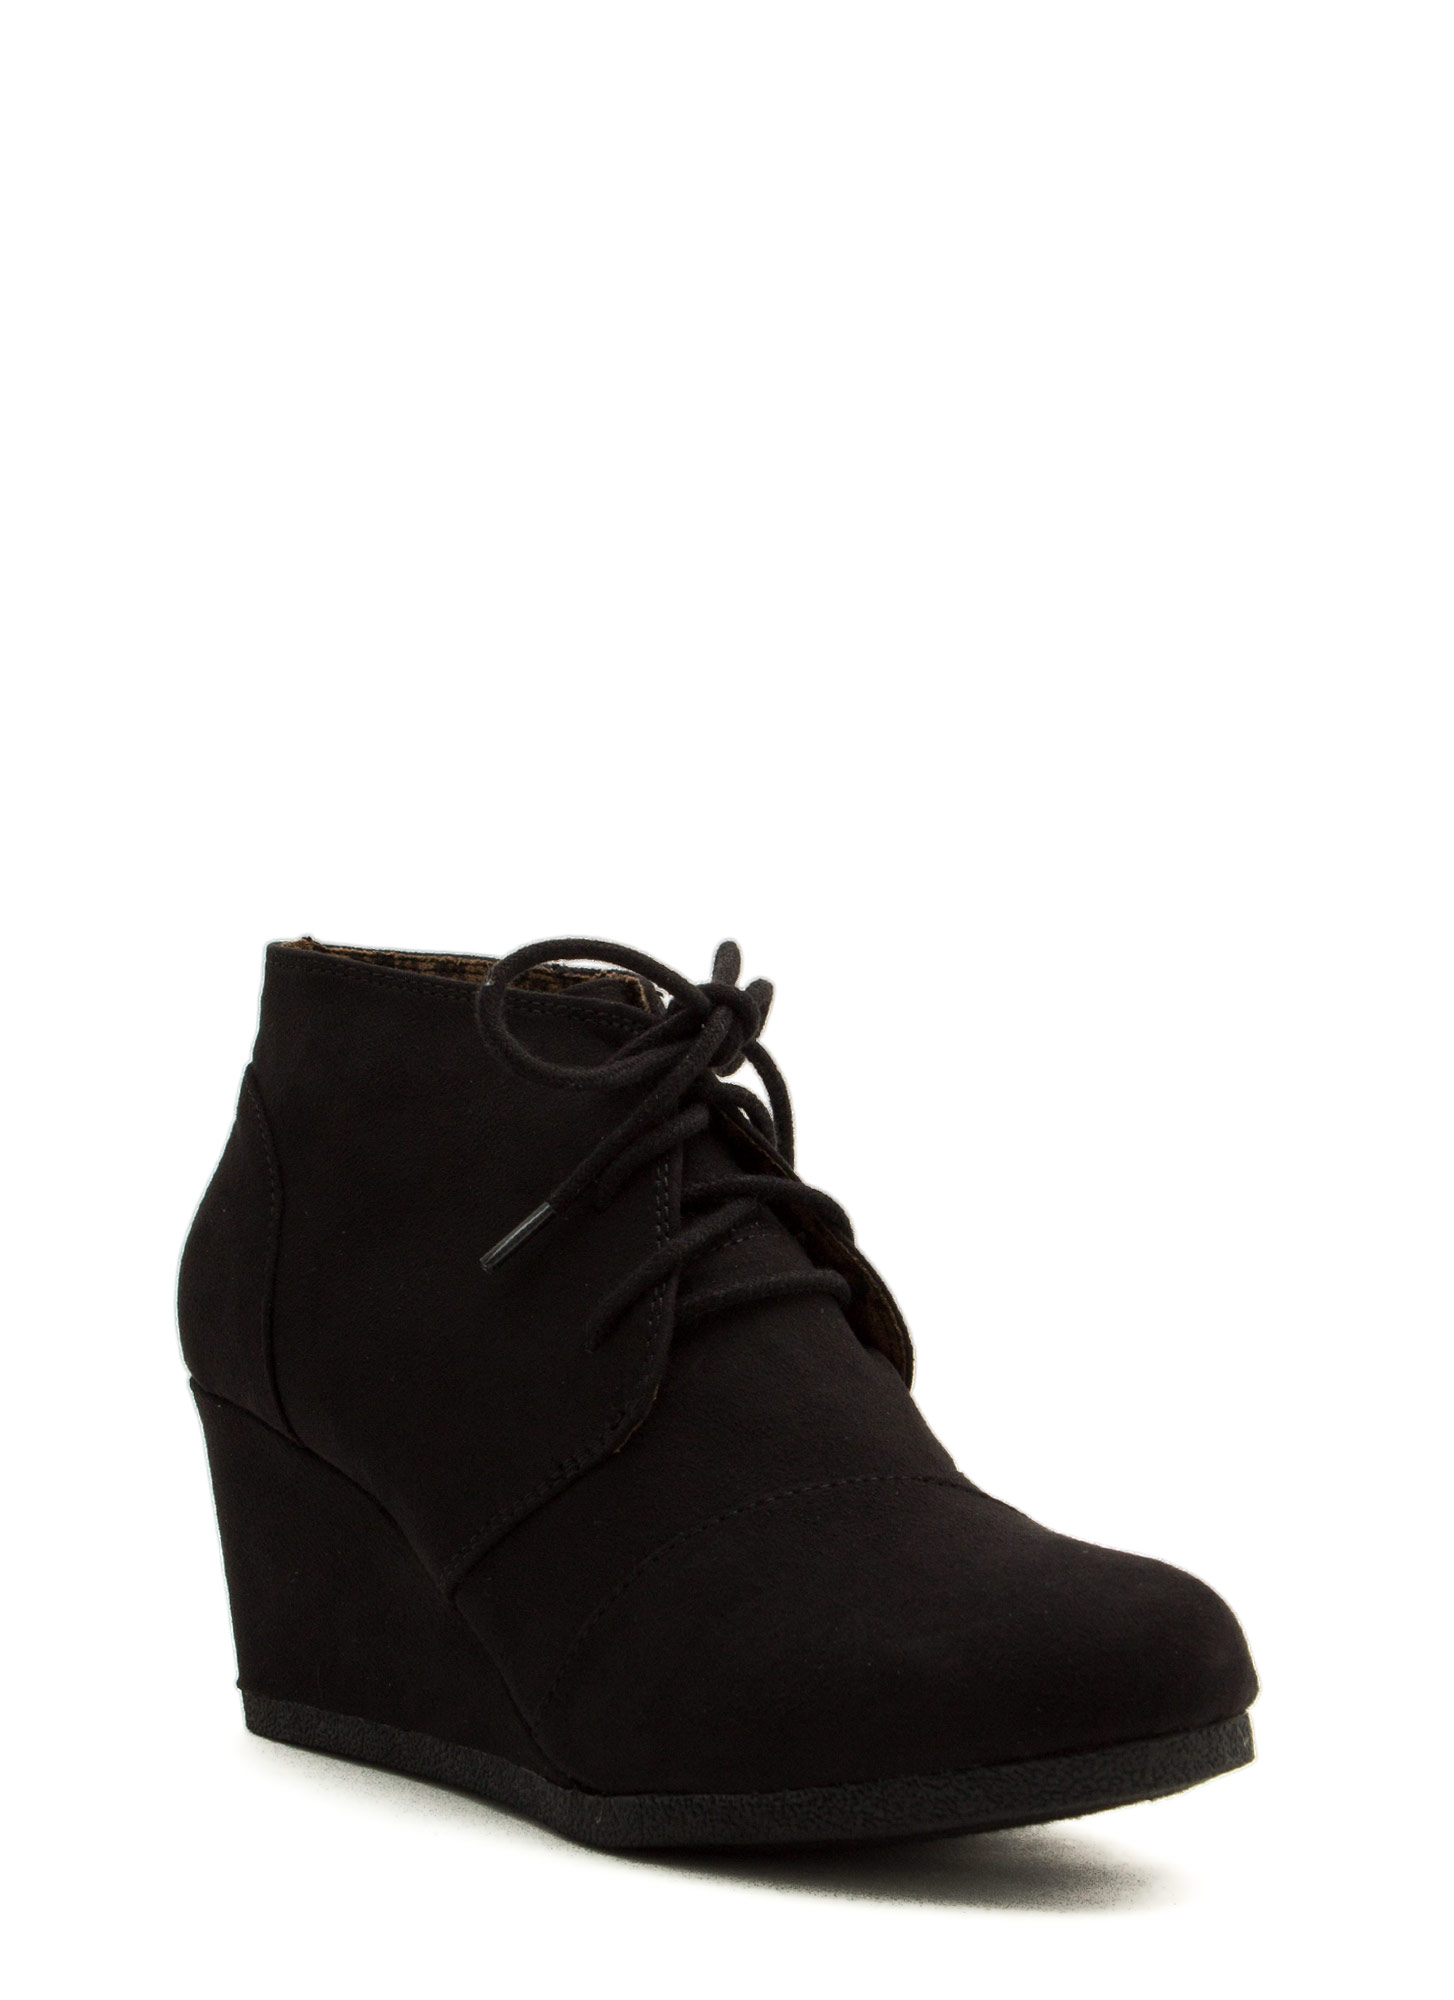 Panel Accent Wedge Booties BLACK